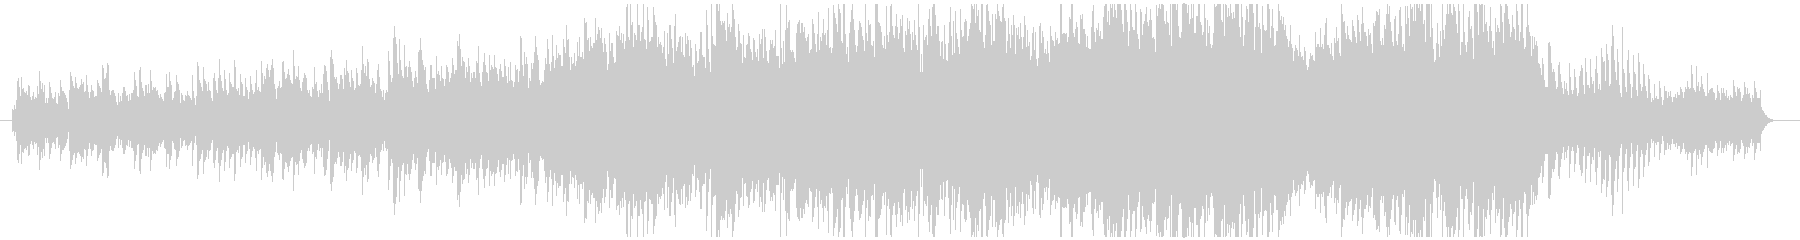 Passionate Piano's unreproduced waveform